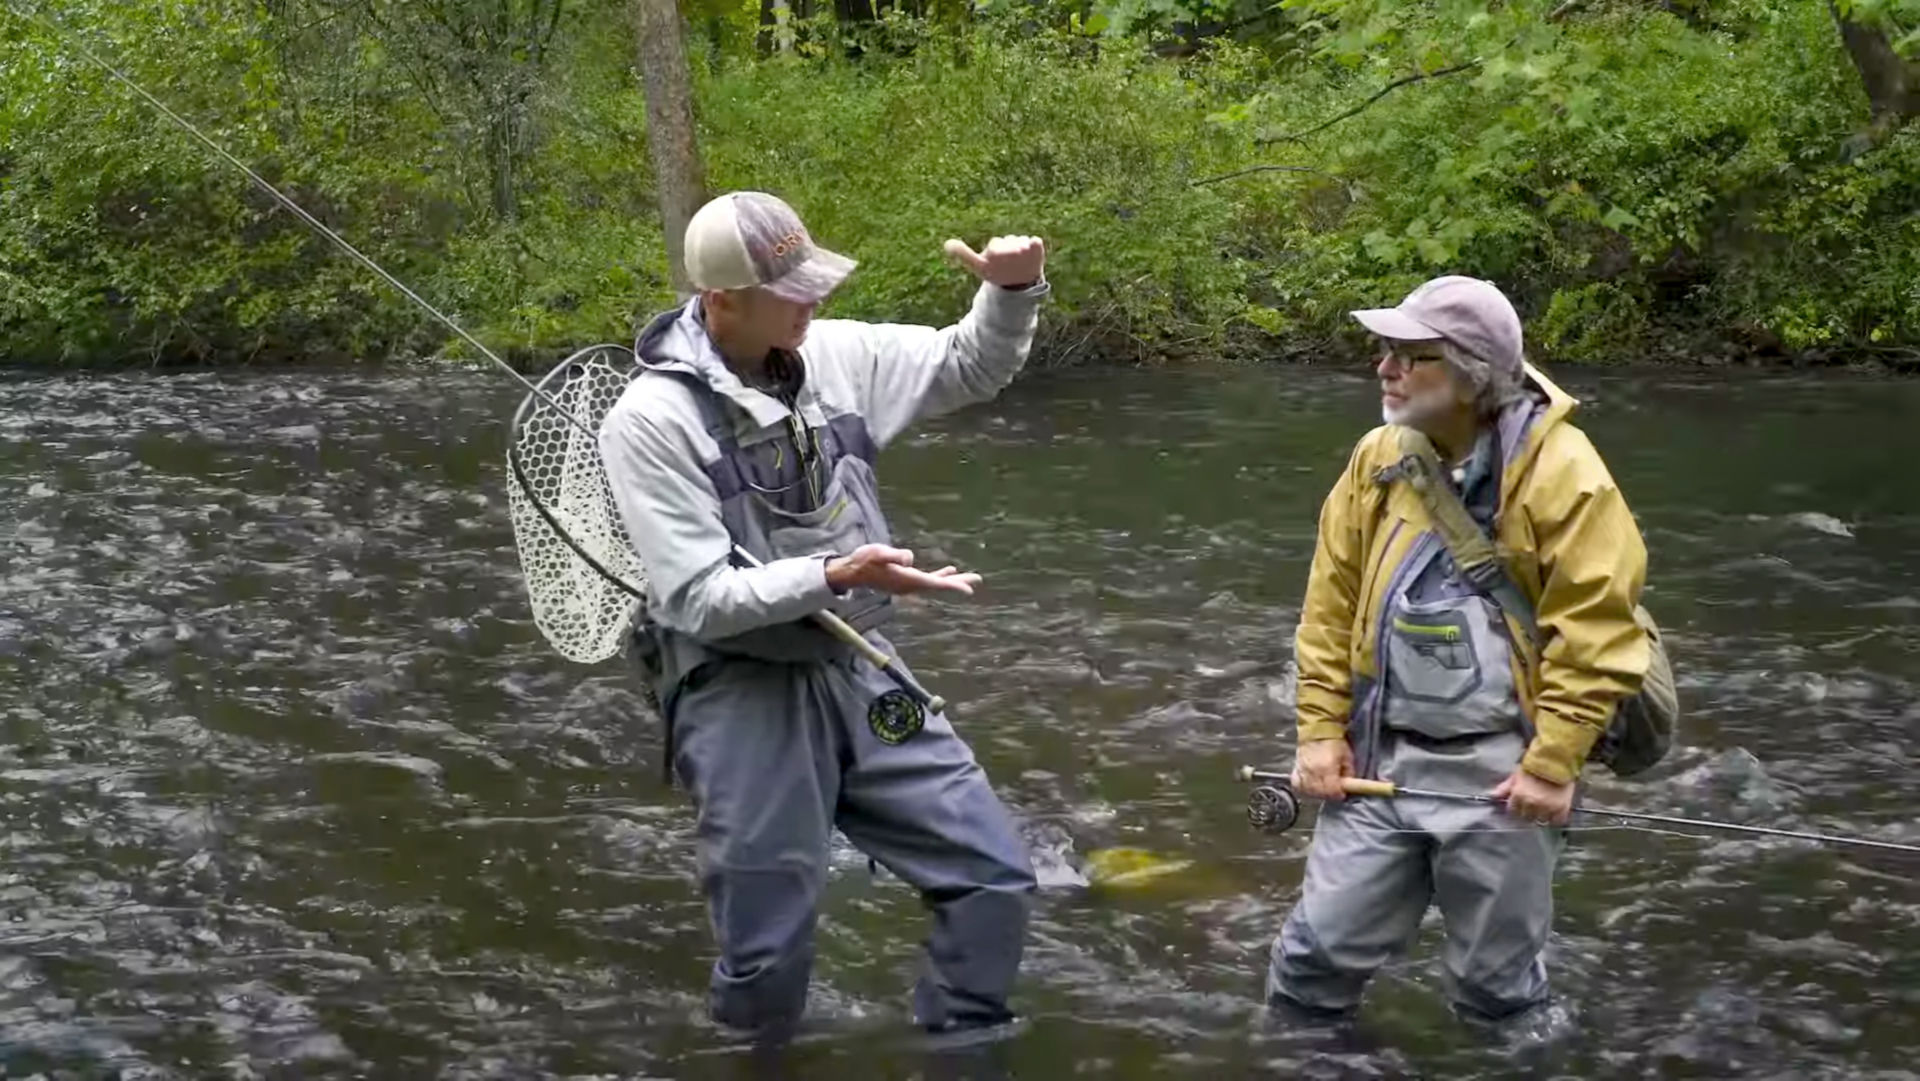 George Daniel uses his hands to indicate about of foot of distance to Tom Rosenbauer as they both wade knee-deep in the river.